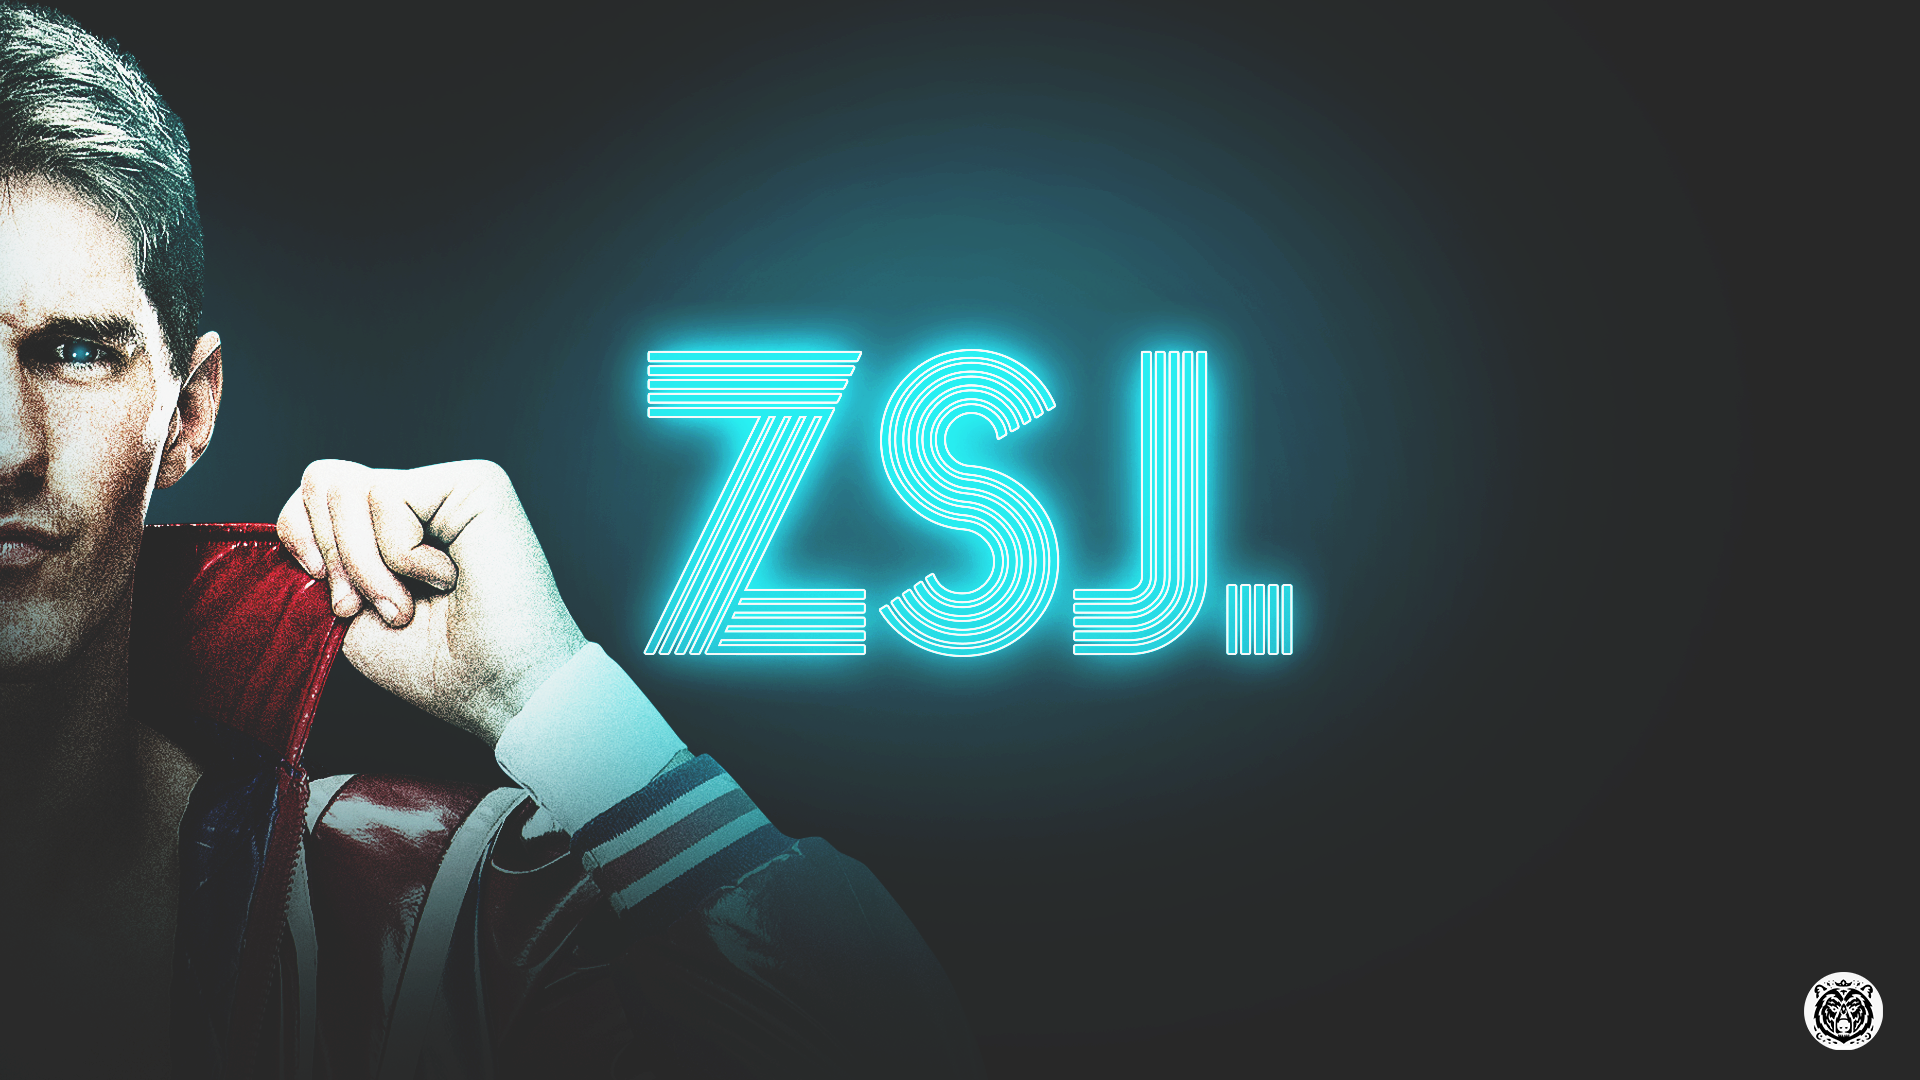 ZSJ Wallpaper [Desktop]. by LastSurvivorY2J